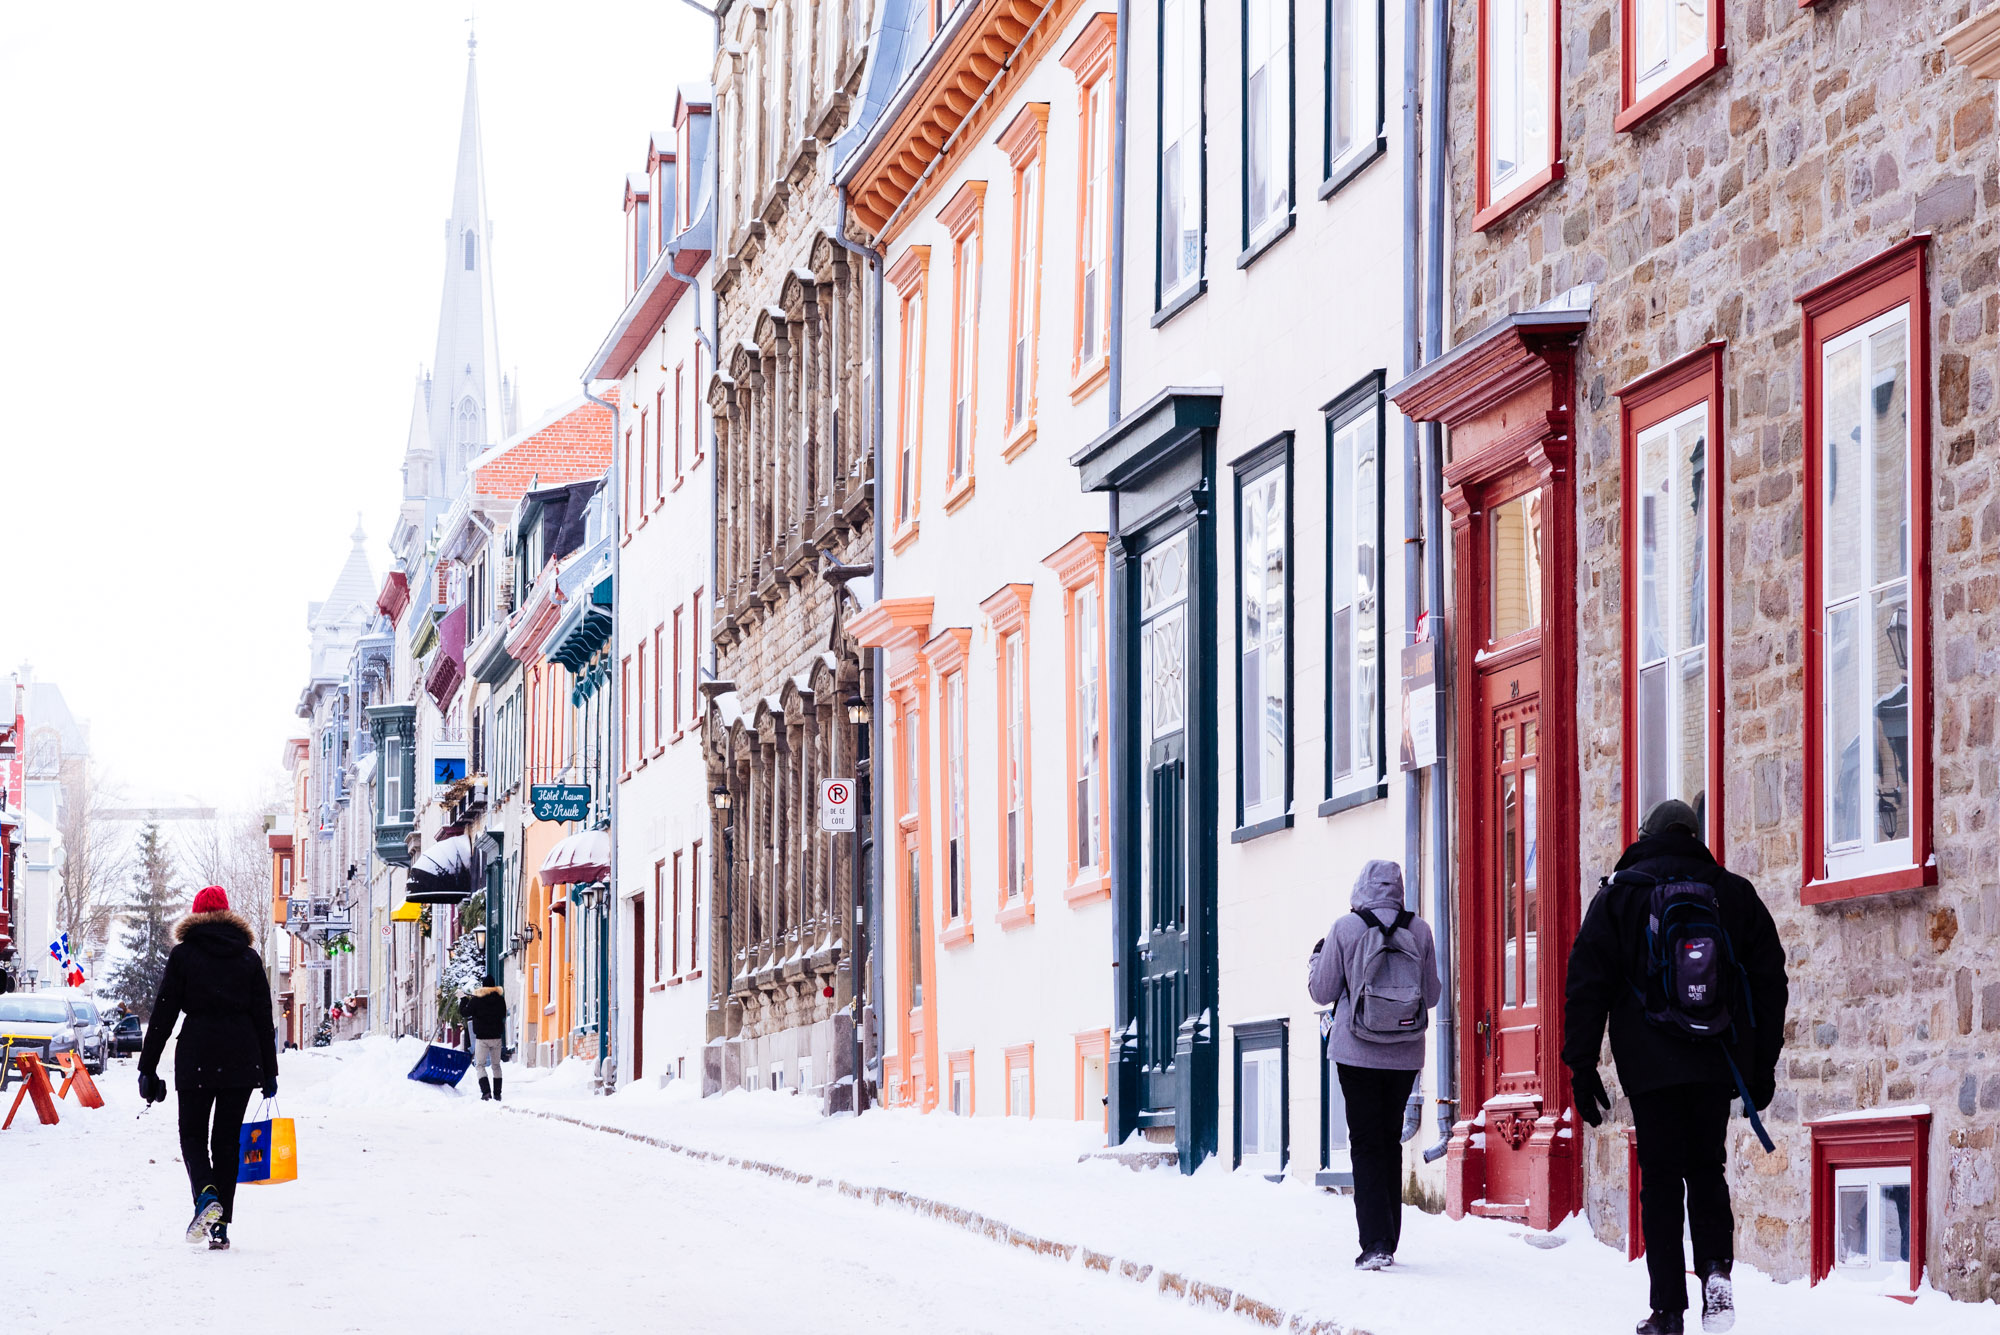 Jeff On The Road - Travel - Quebec City Winter Photos - All photos are under Copyright © 2017 Jeff Frenette Photography / dezjeff. To use the photos, please contact me at dezjeff@me.com.